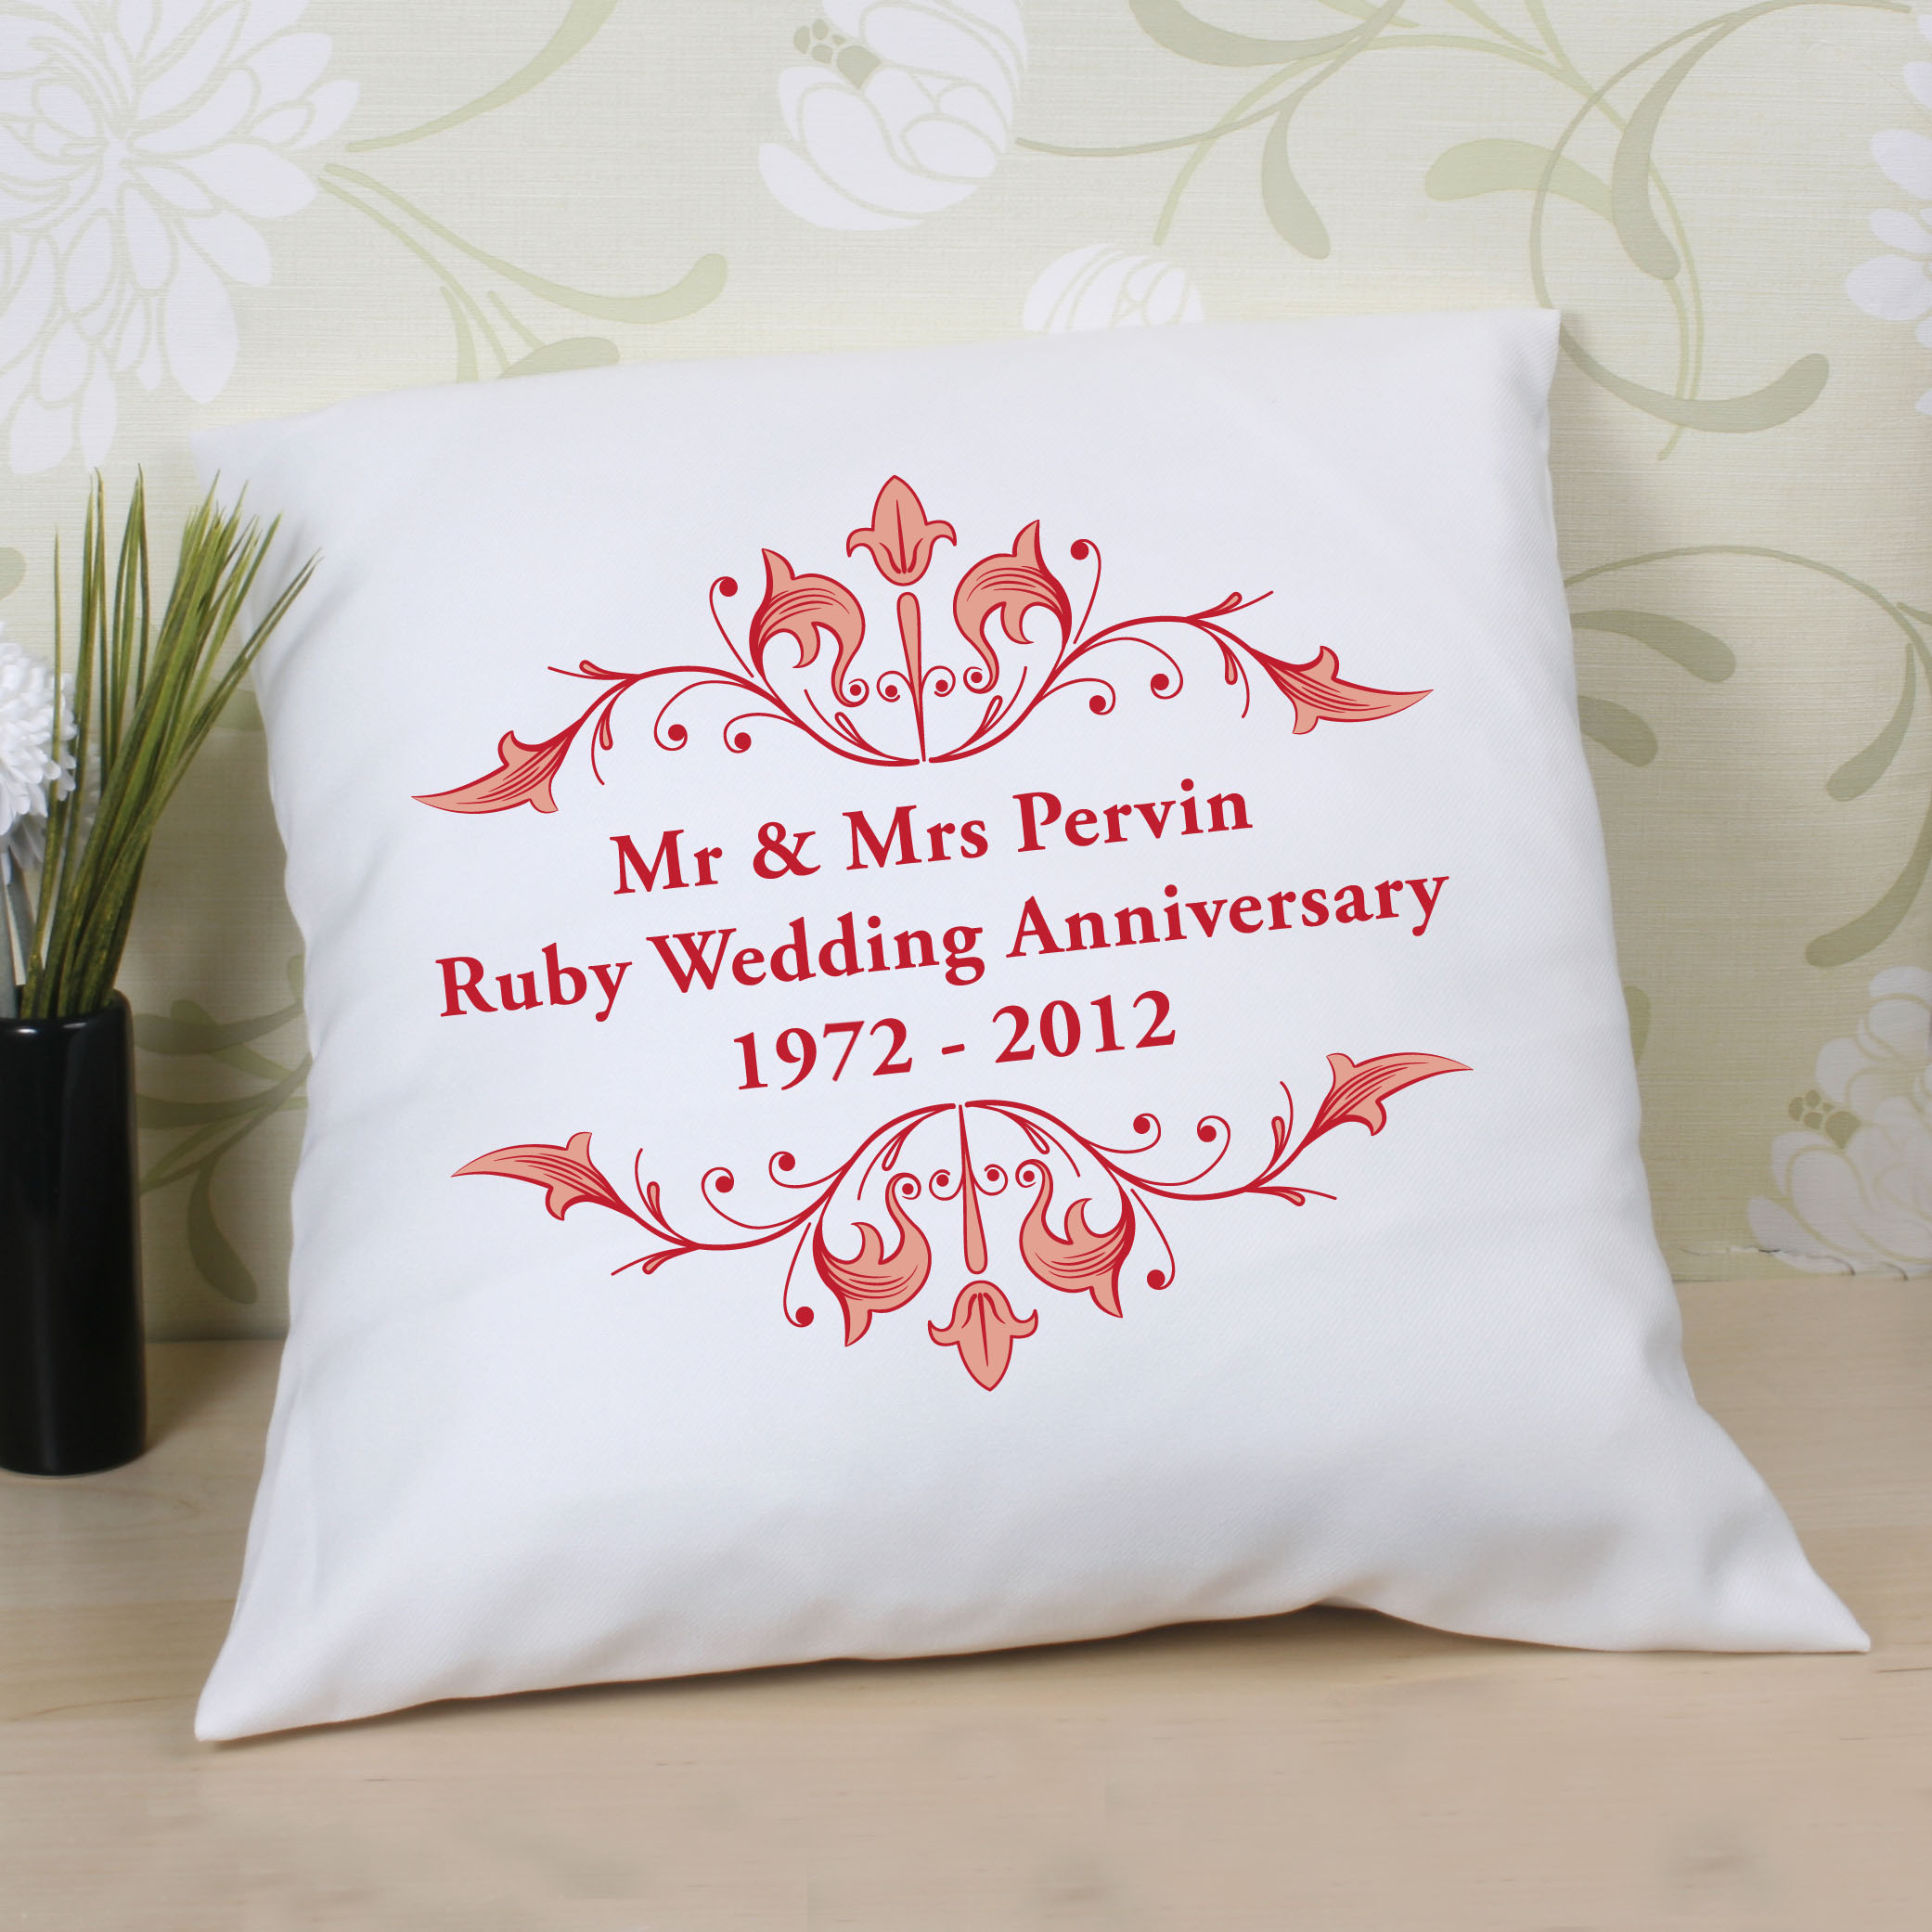 Personalised Cushions Great Personalised Gift Ideas